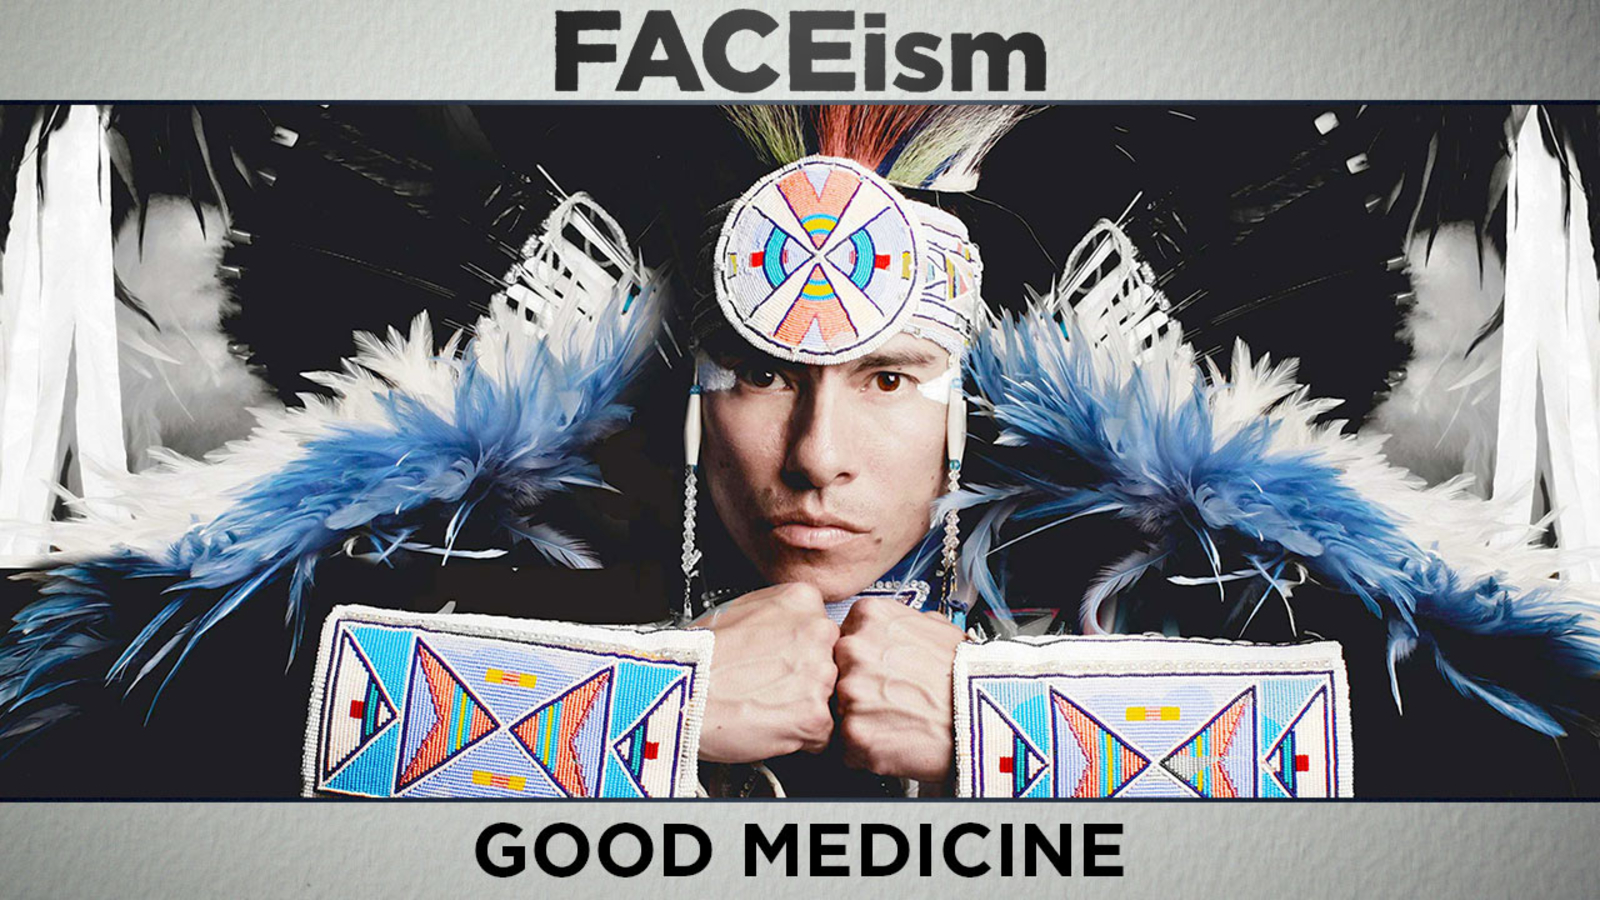 abc13.com: FACEism: Supaman merges Native American culture, hip-hop to deliver message of truth